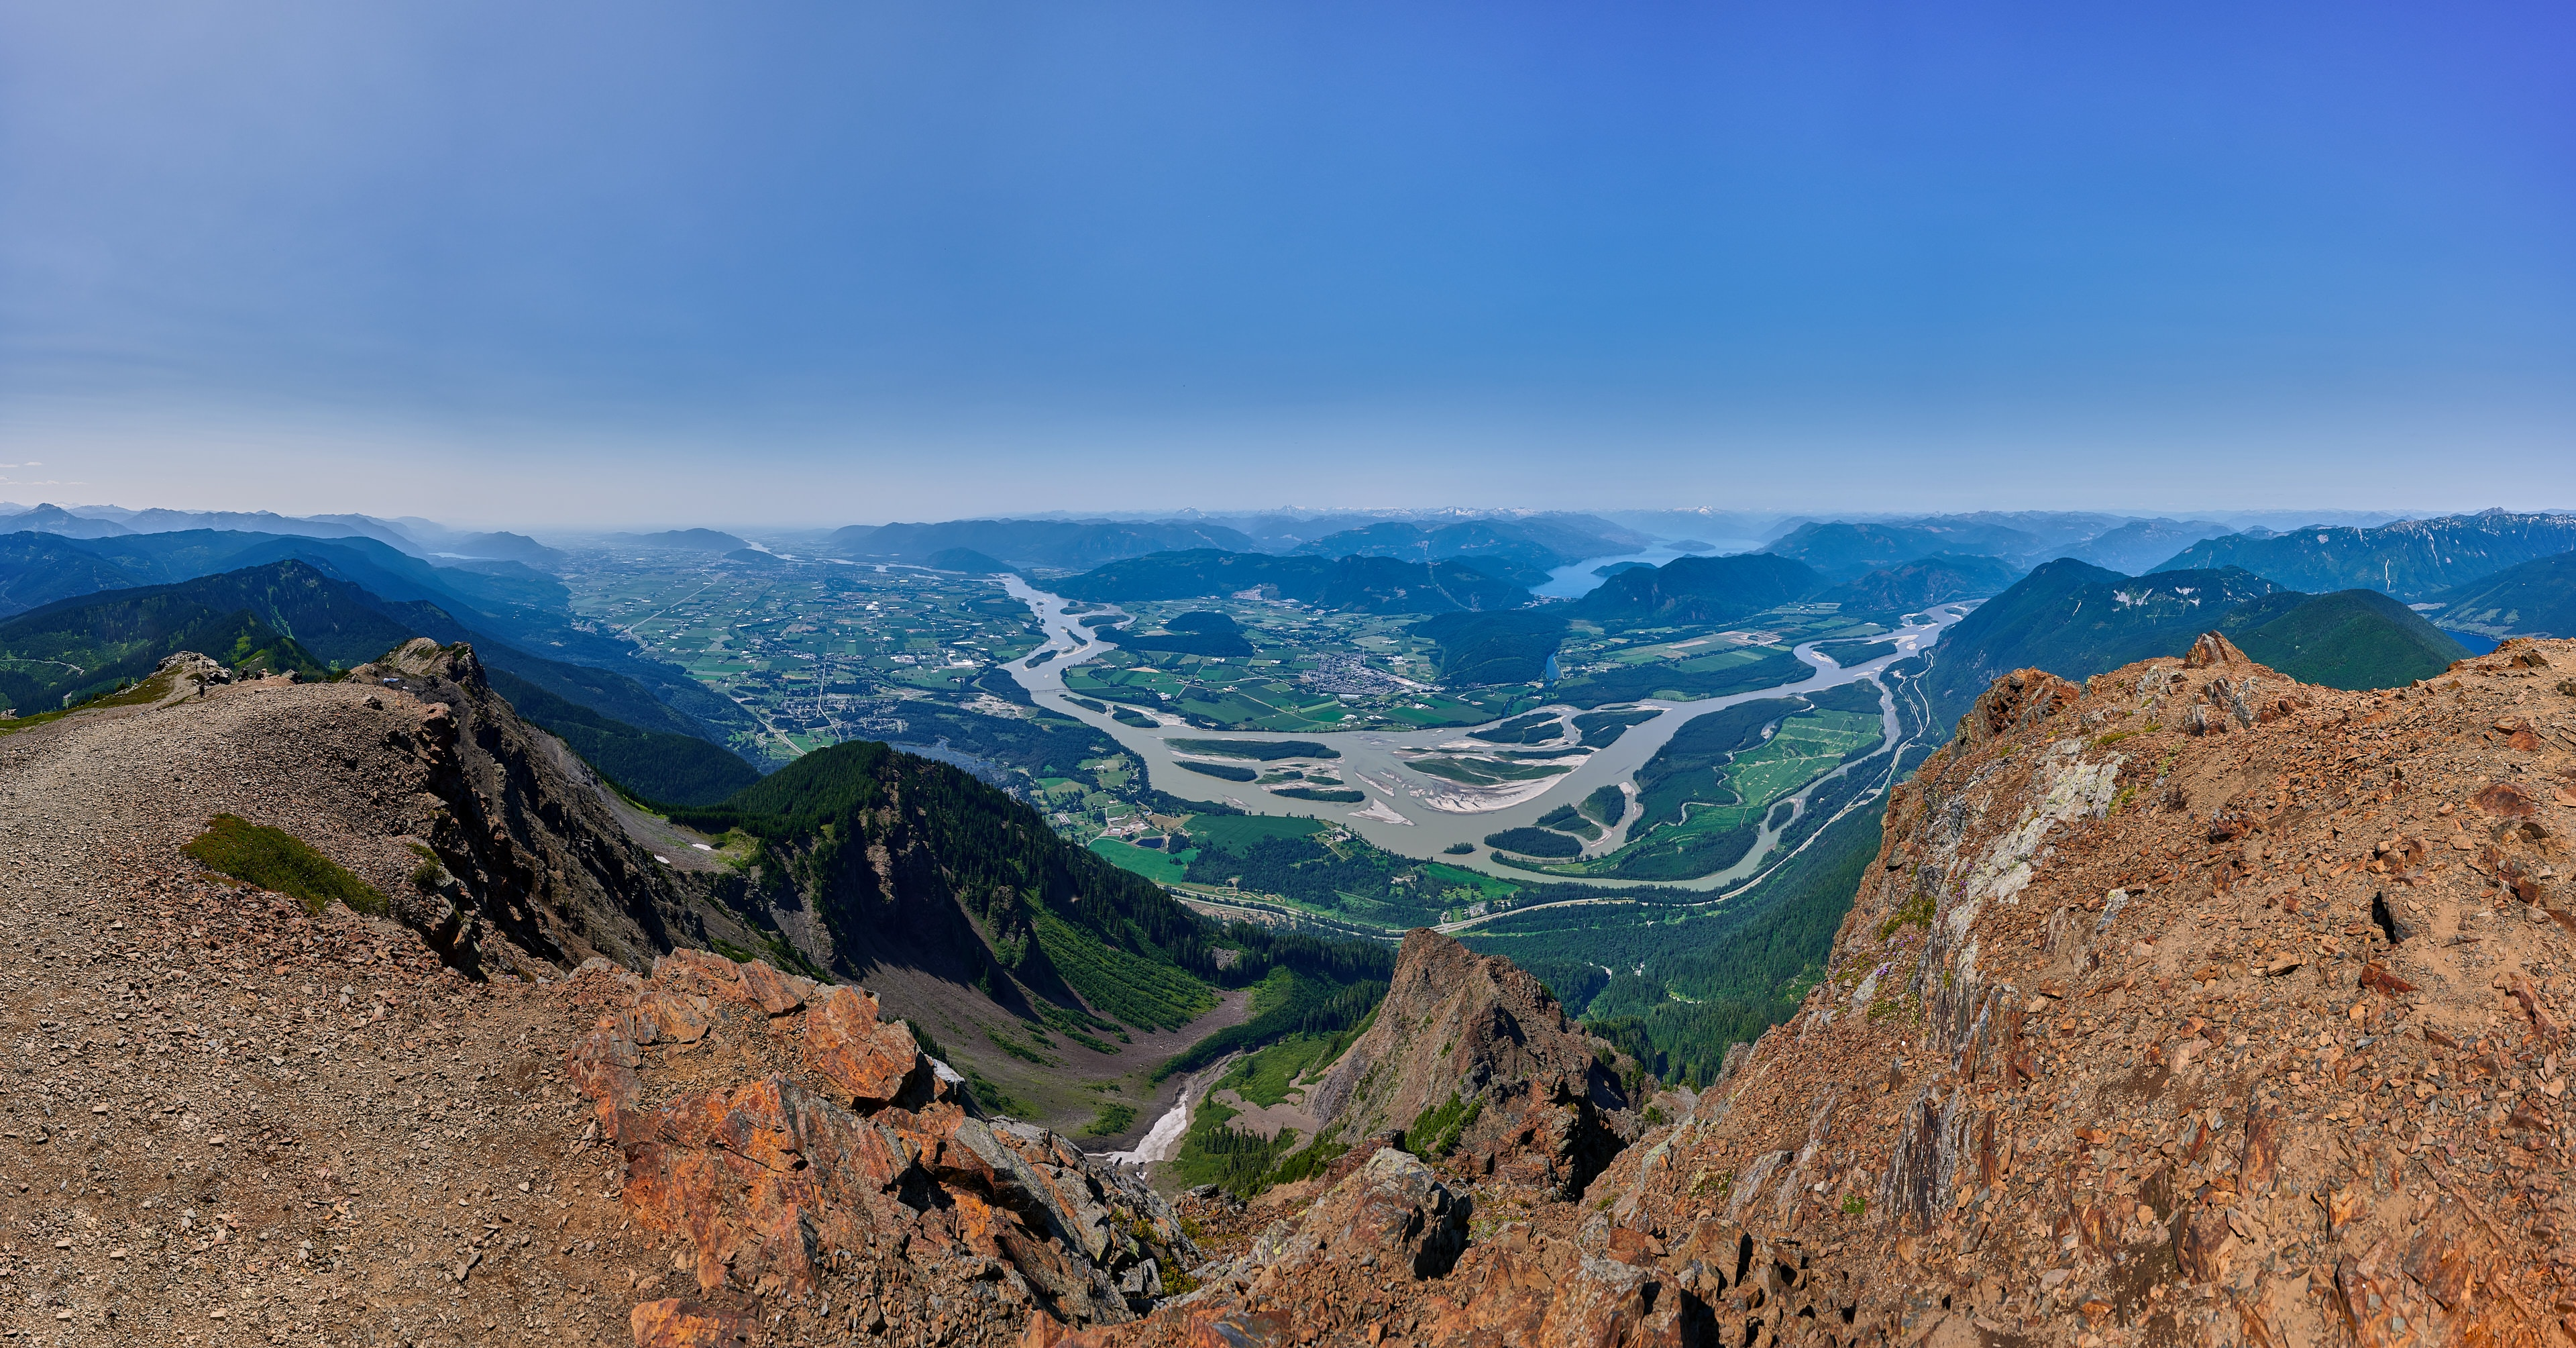 Cheam Peak Panorama with Nikon Z7 and Nikkor 14-30 f/4 S